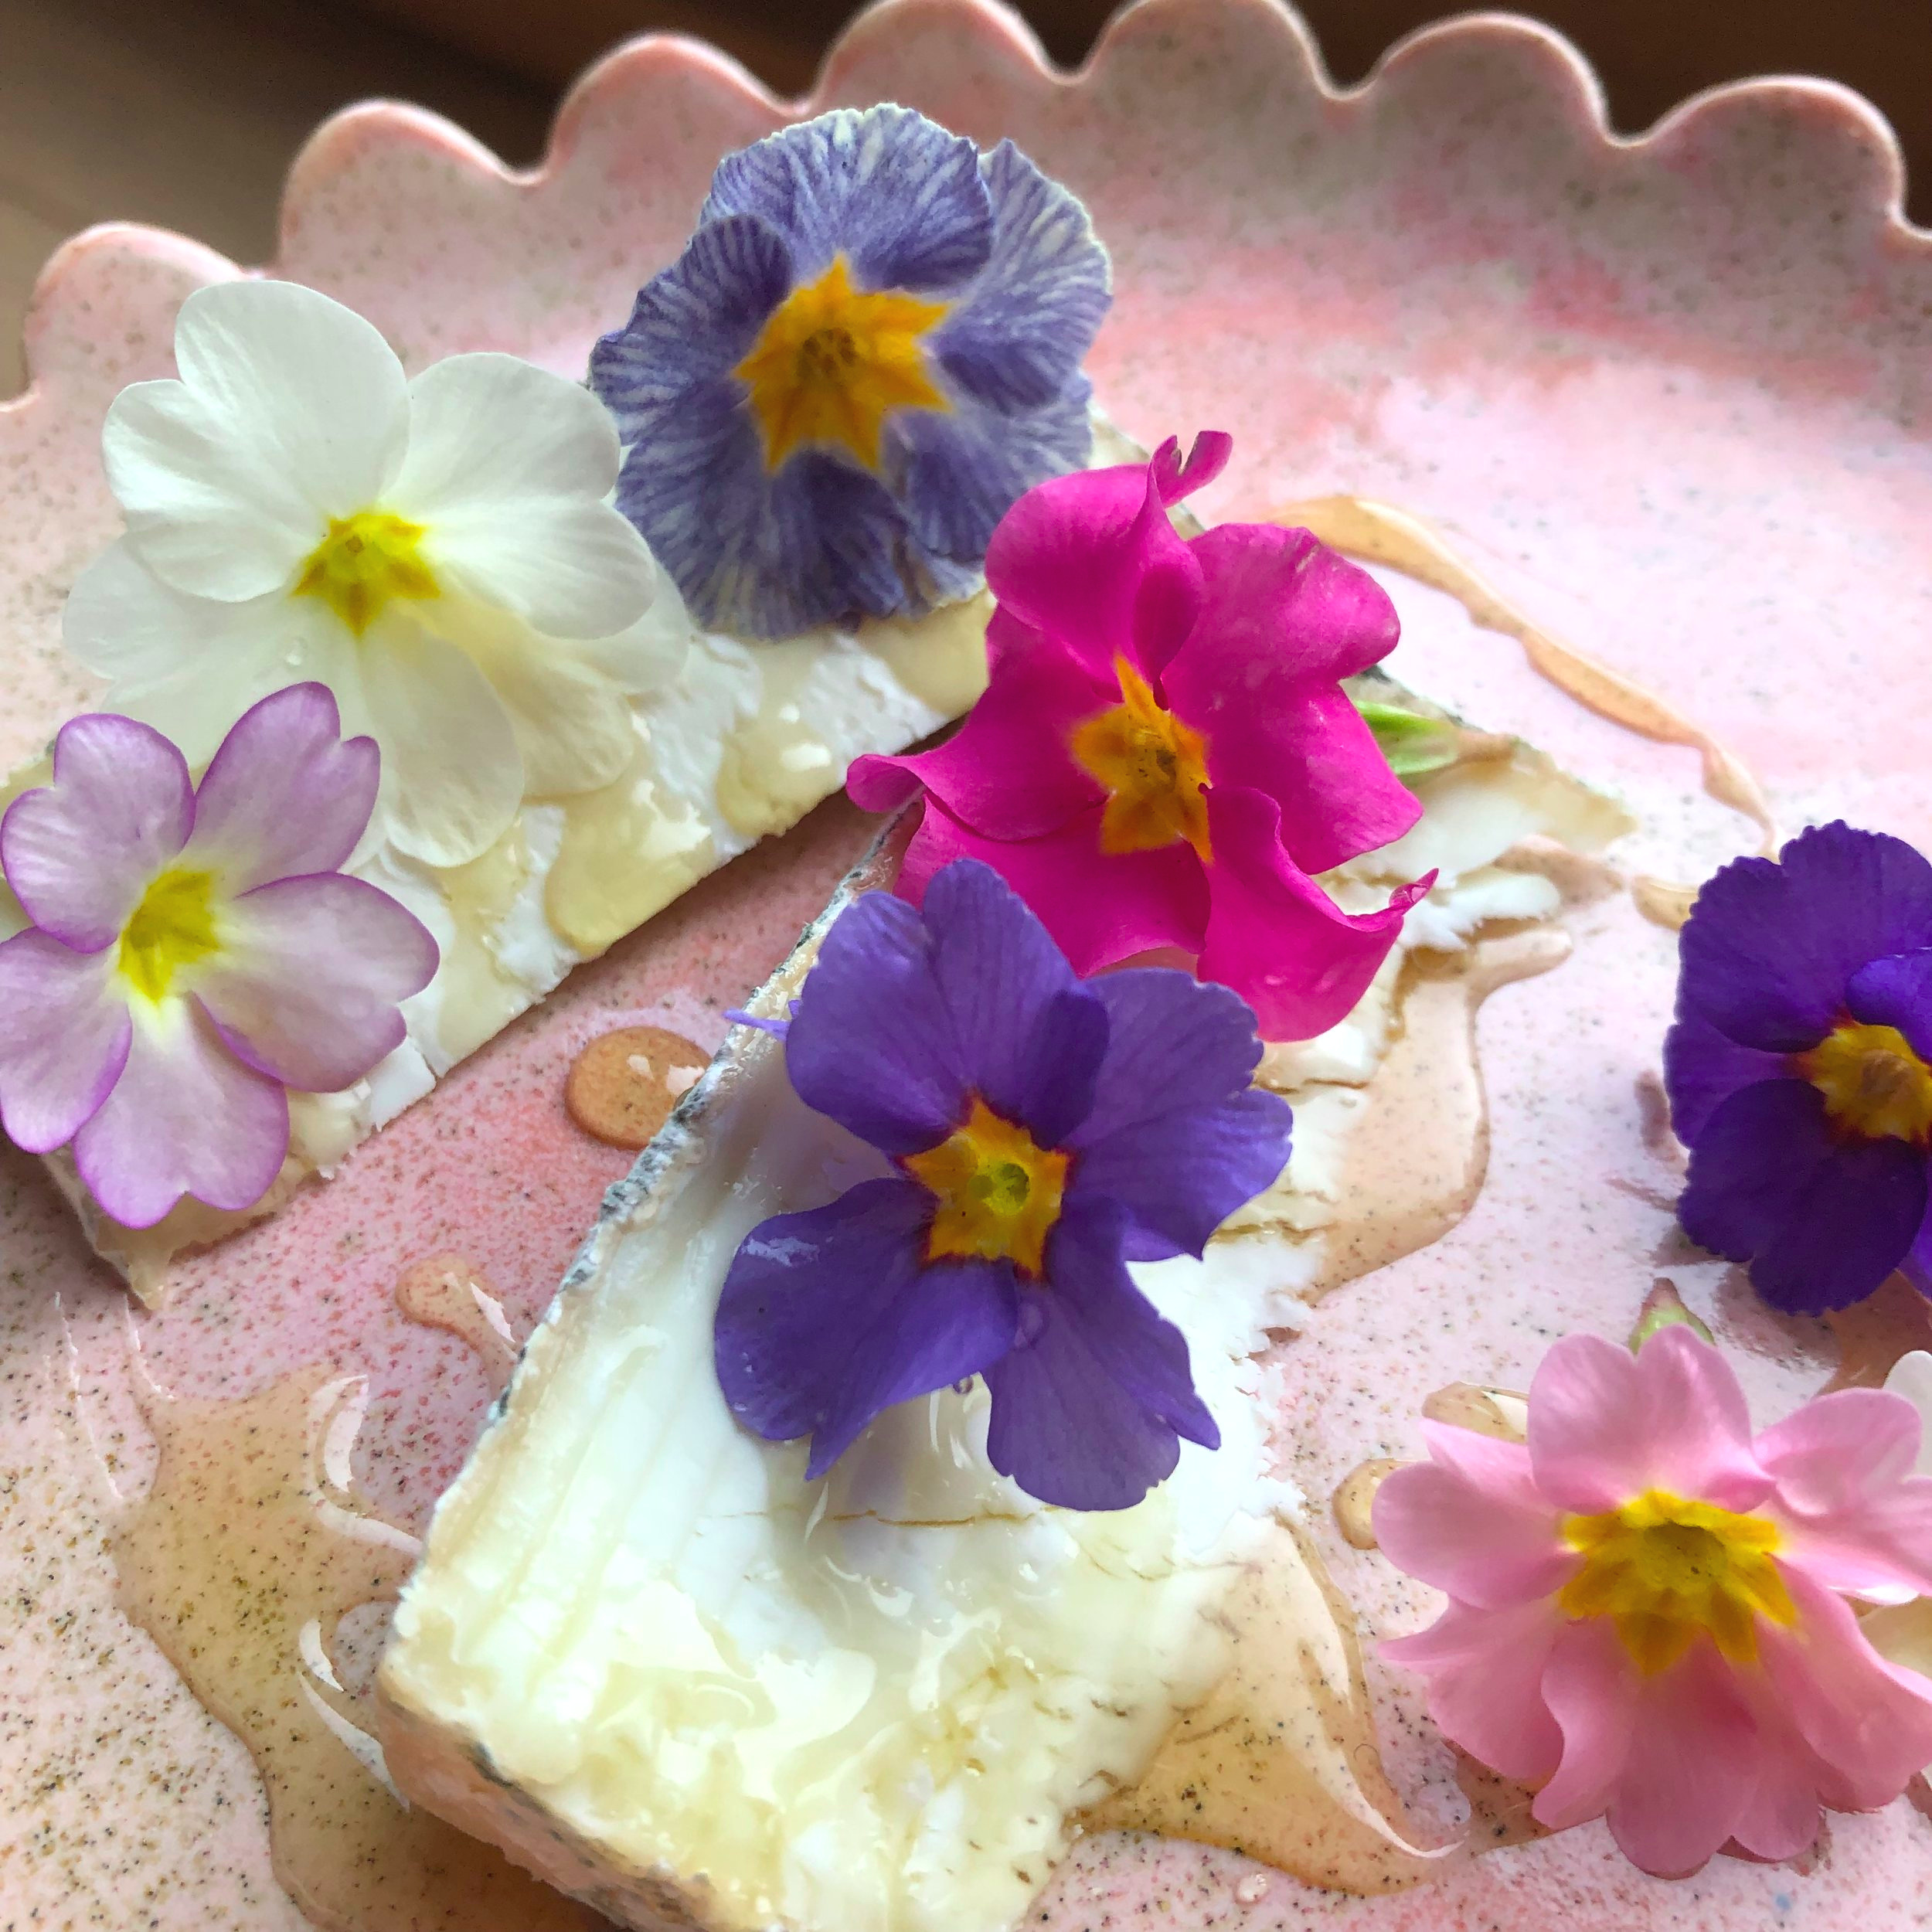 Cheese platter with edible primulas and honey